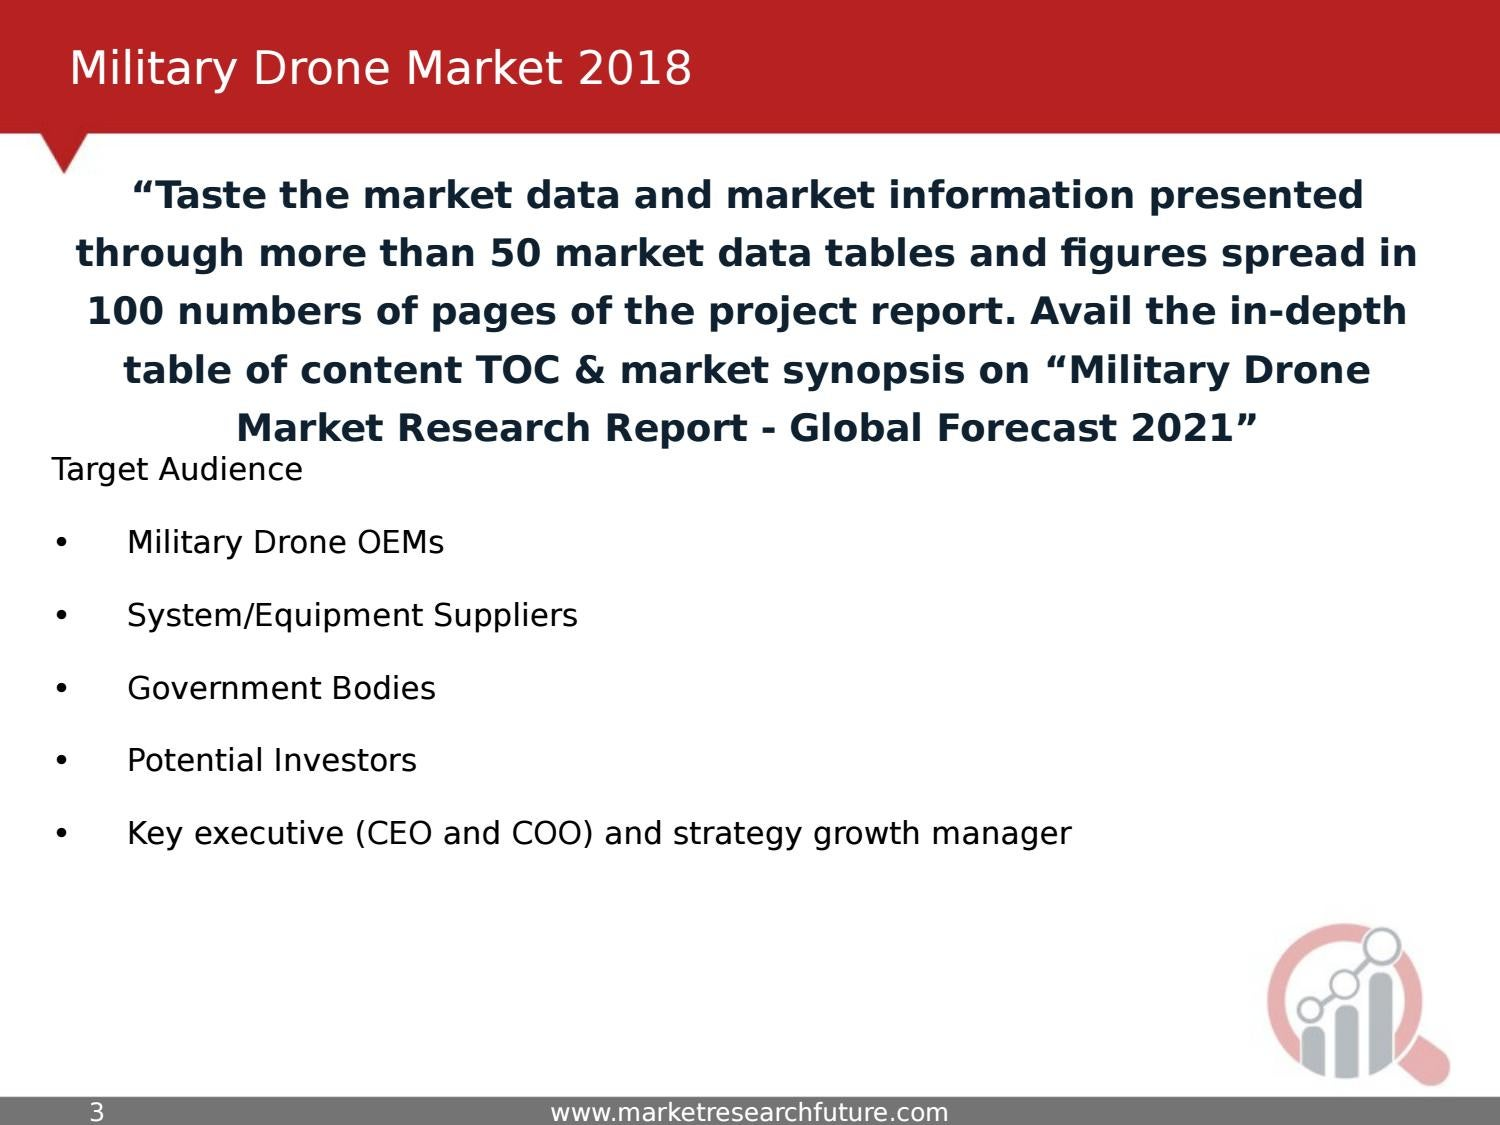 Military Drone Market Supply, Sales, Revenue and Forecast from 2018 to 2023